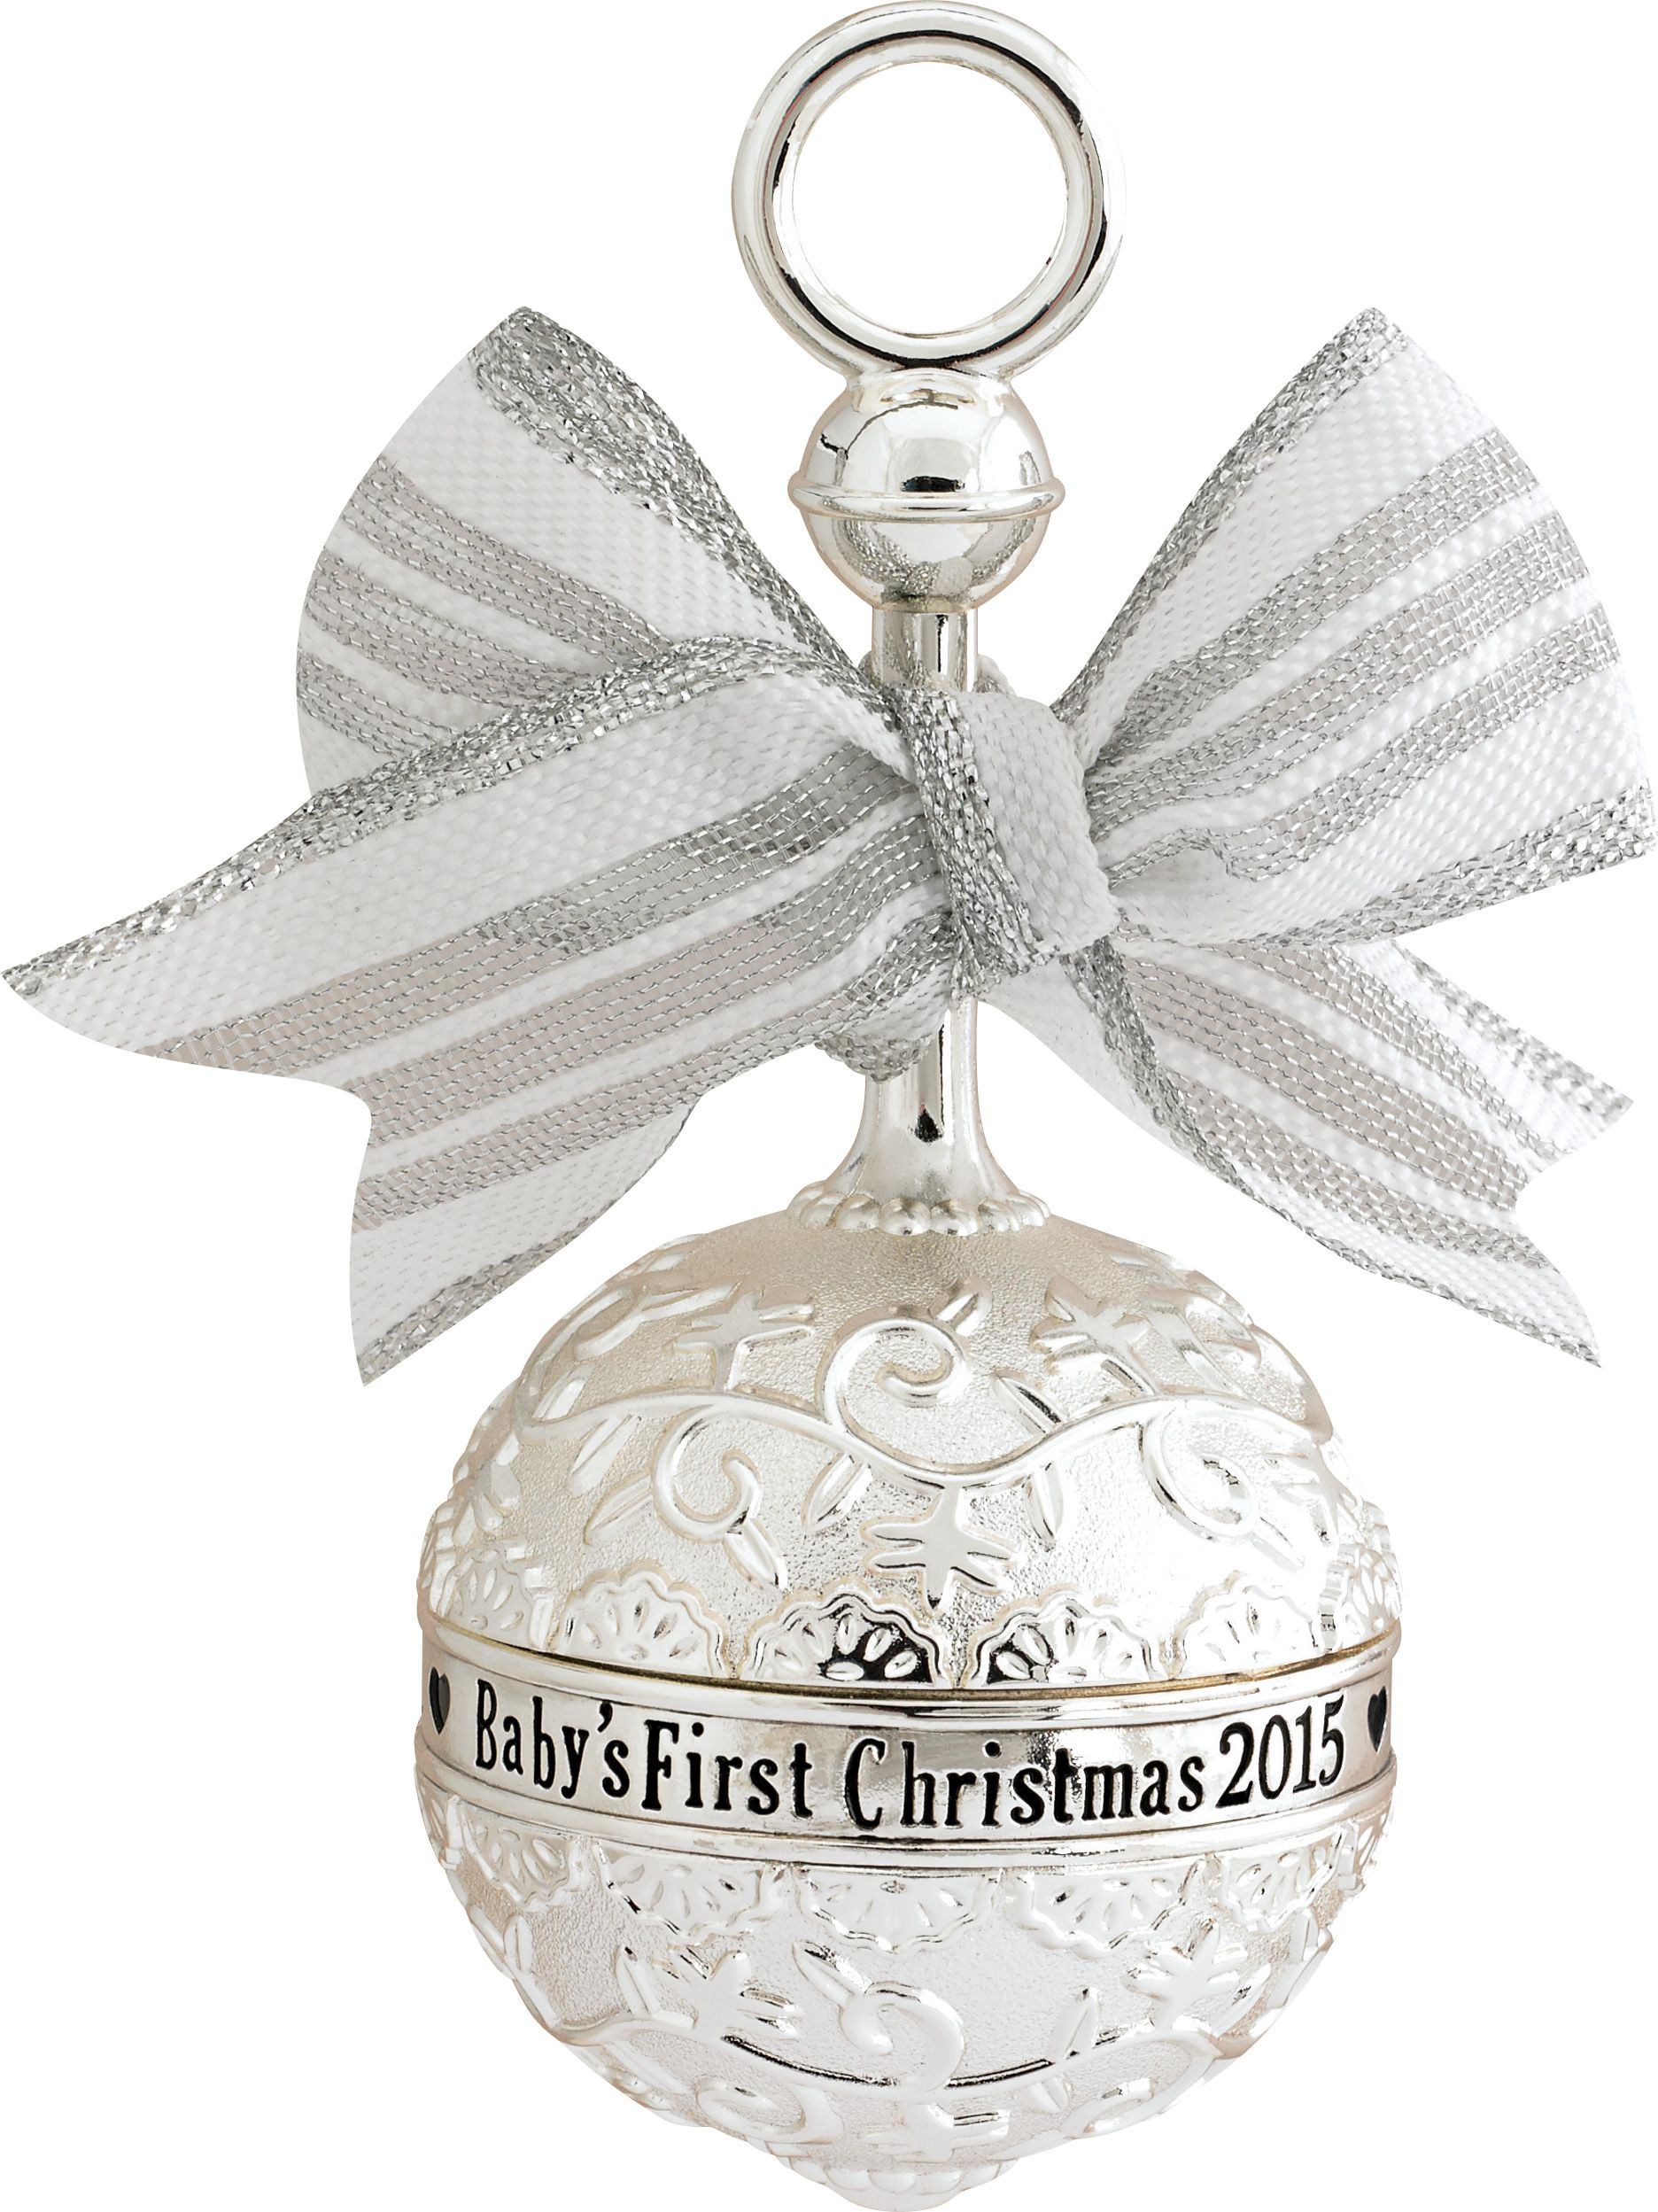 2015 Babys First Christmas Ornament  Carlton Heirloom Ornaments